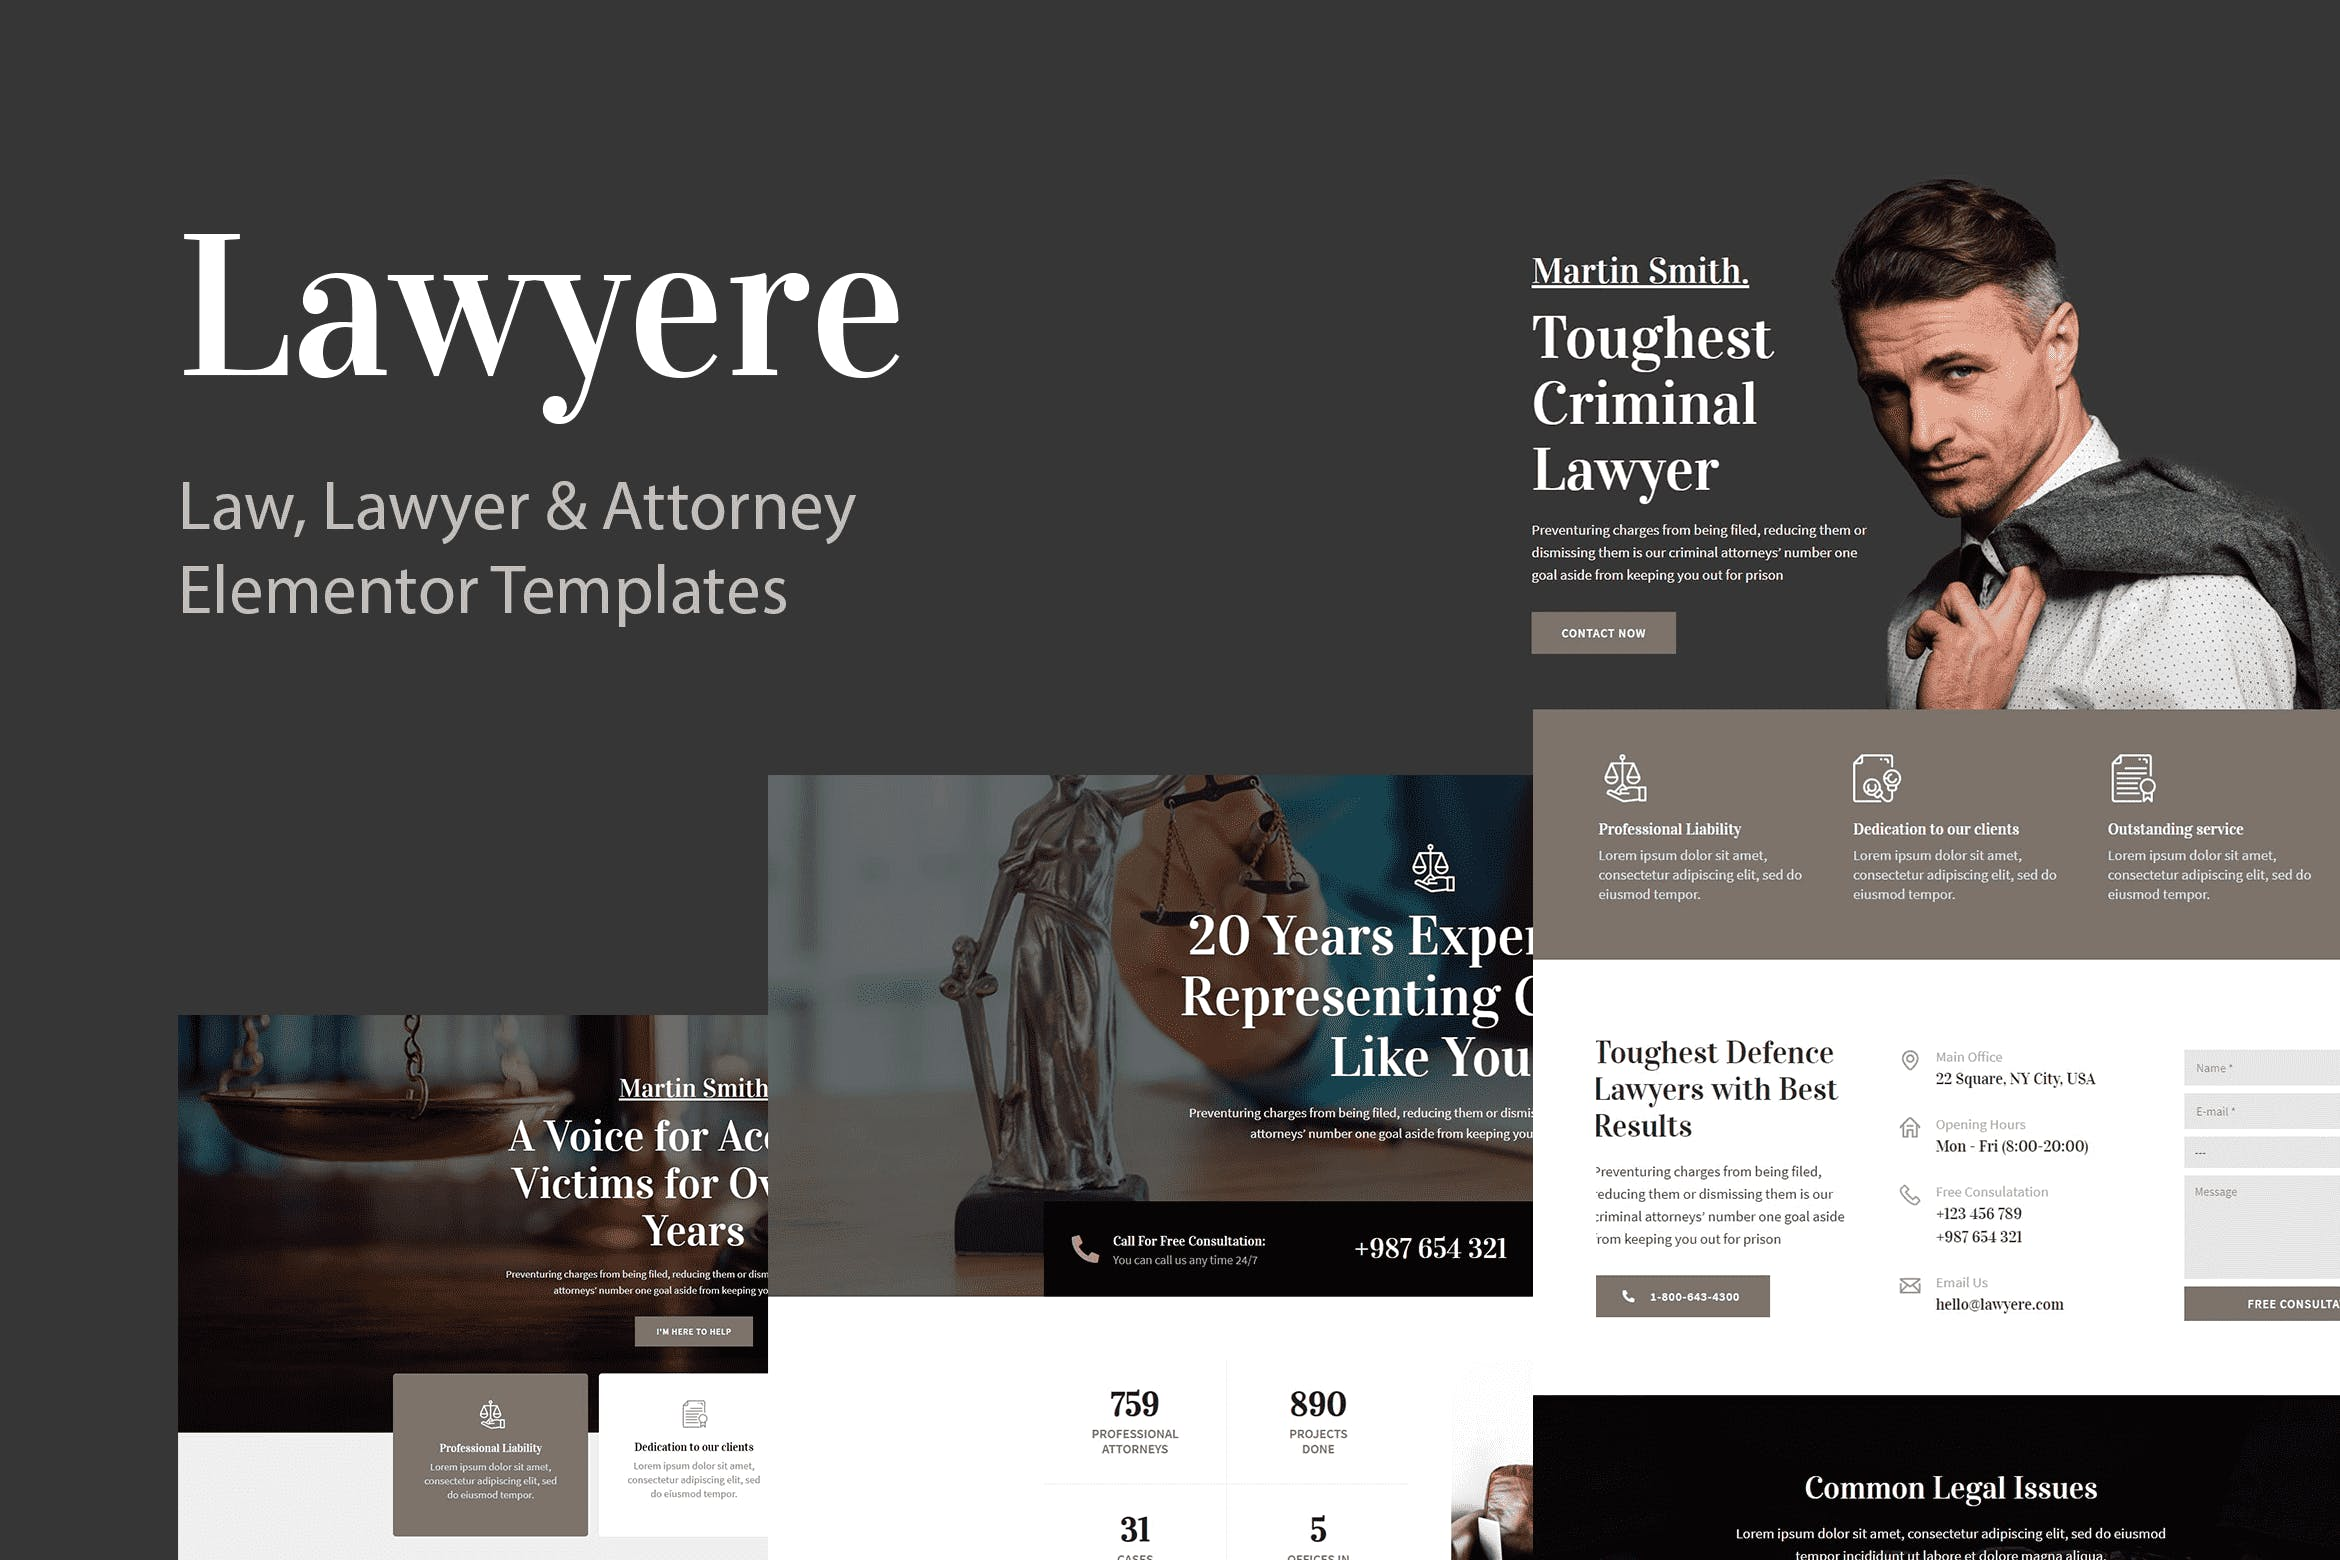 Lawyere Legal Attorney Template Kit By Pixelshow On Envato Elements